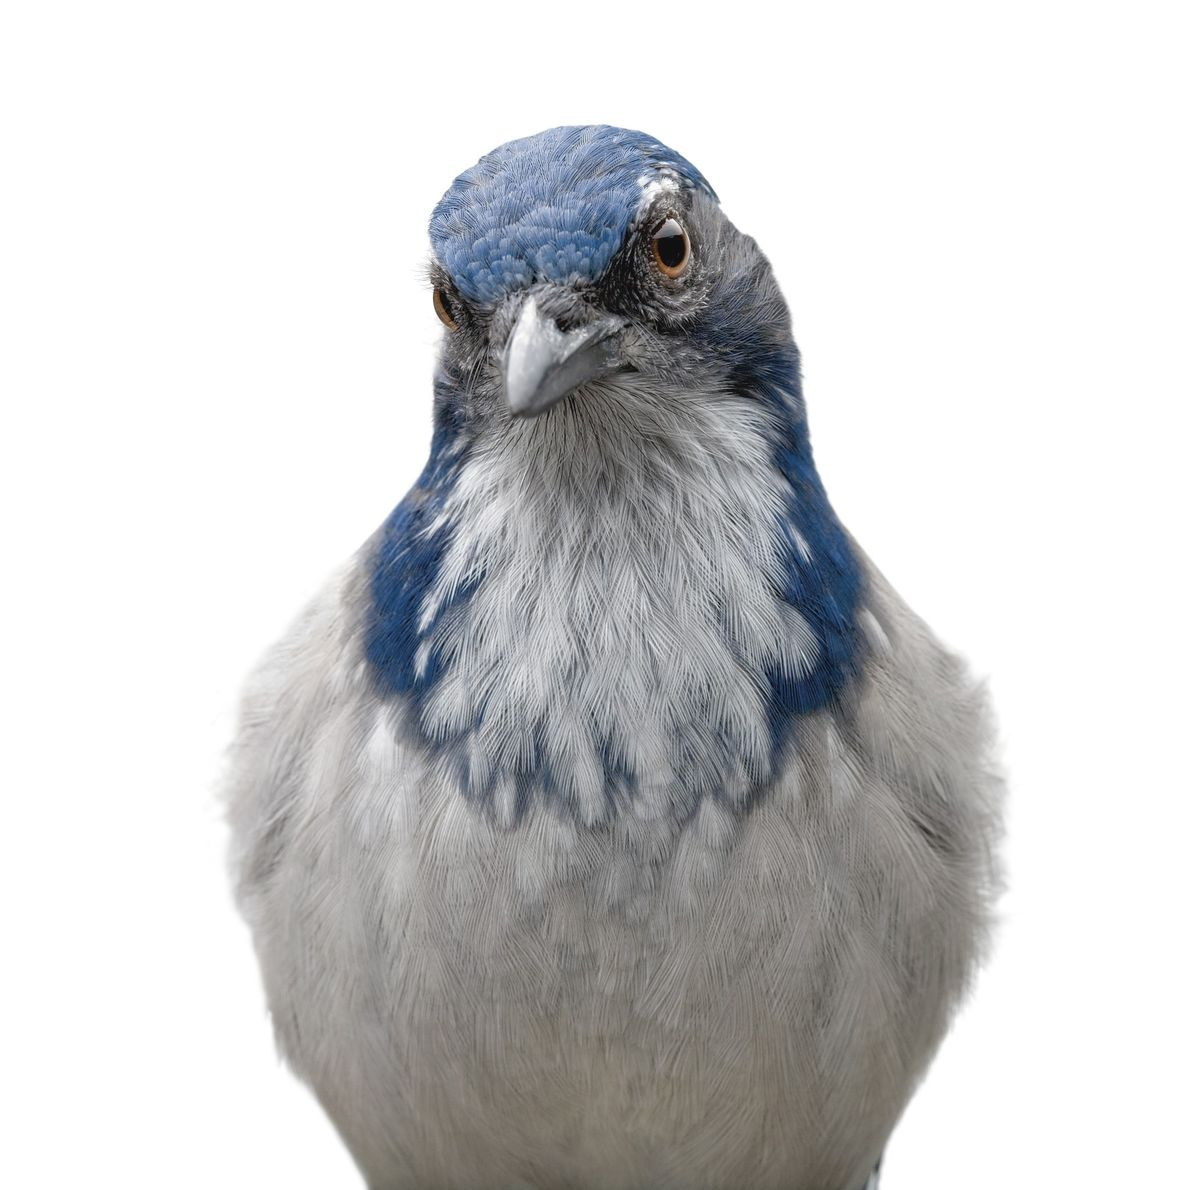 The scrub jay, a bird native to western North America, can remember more than 200 different ...